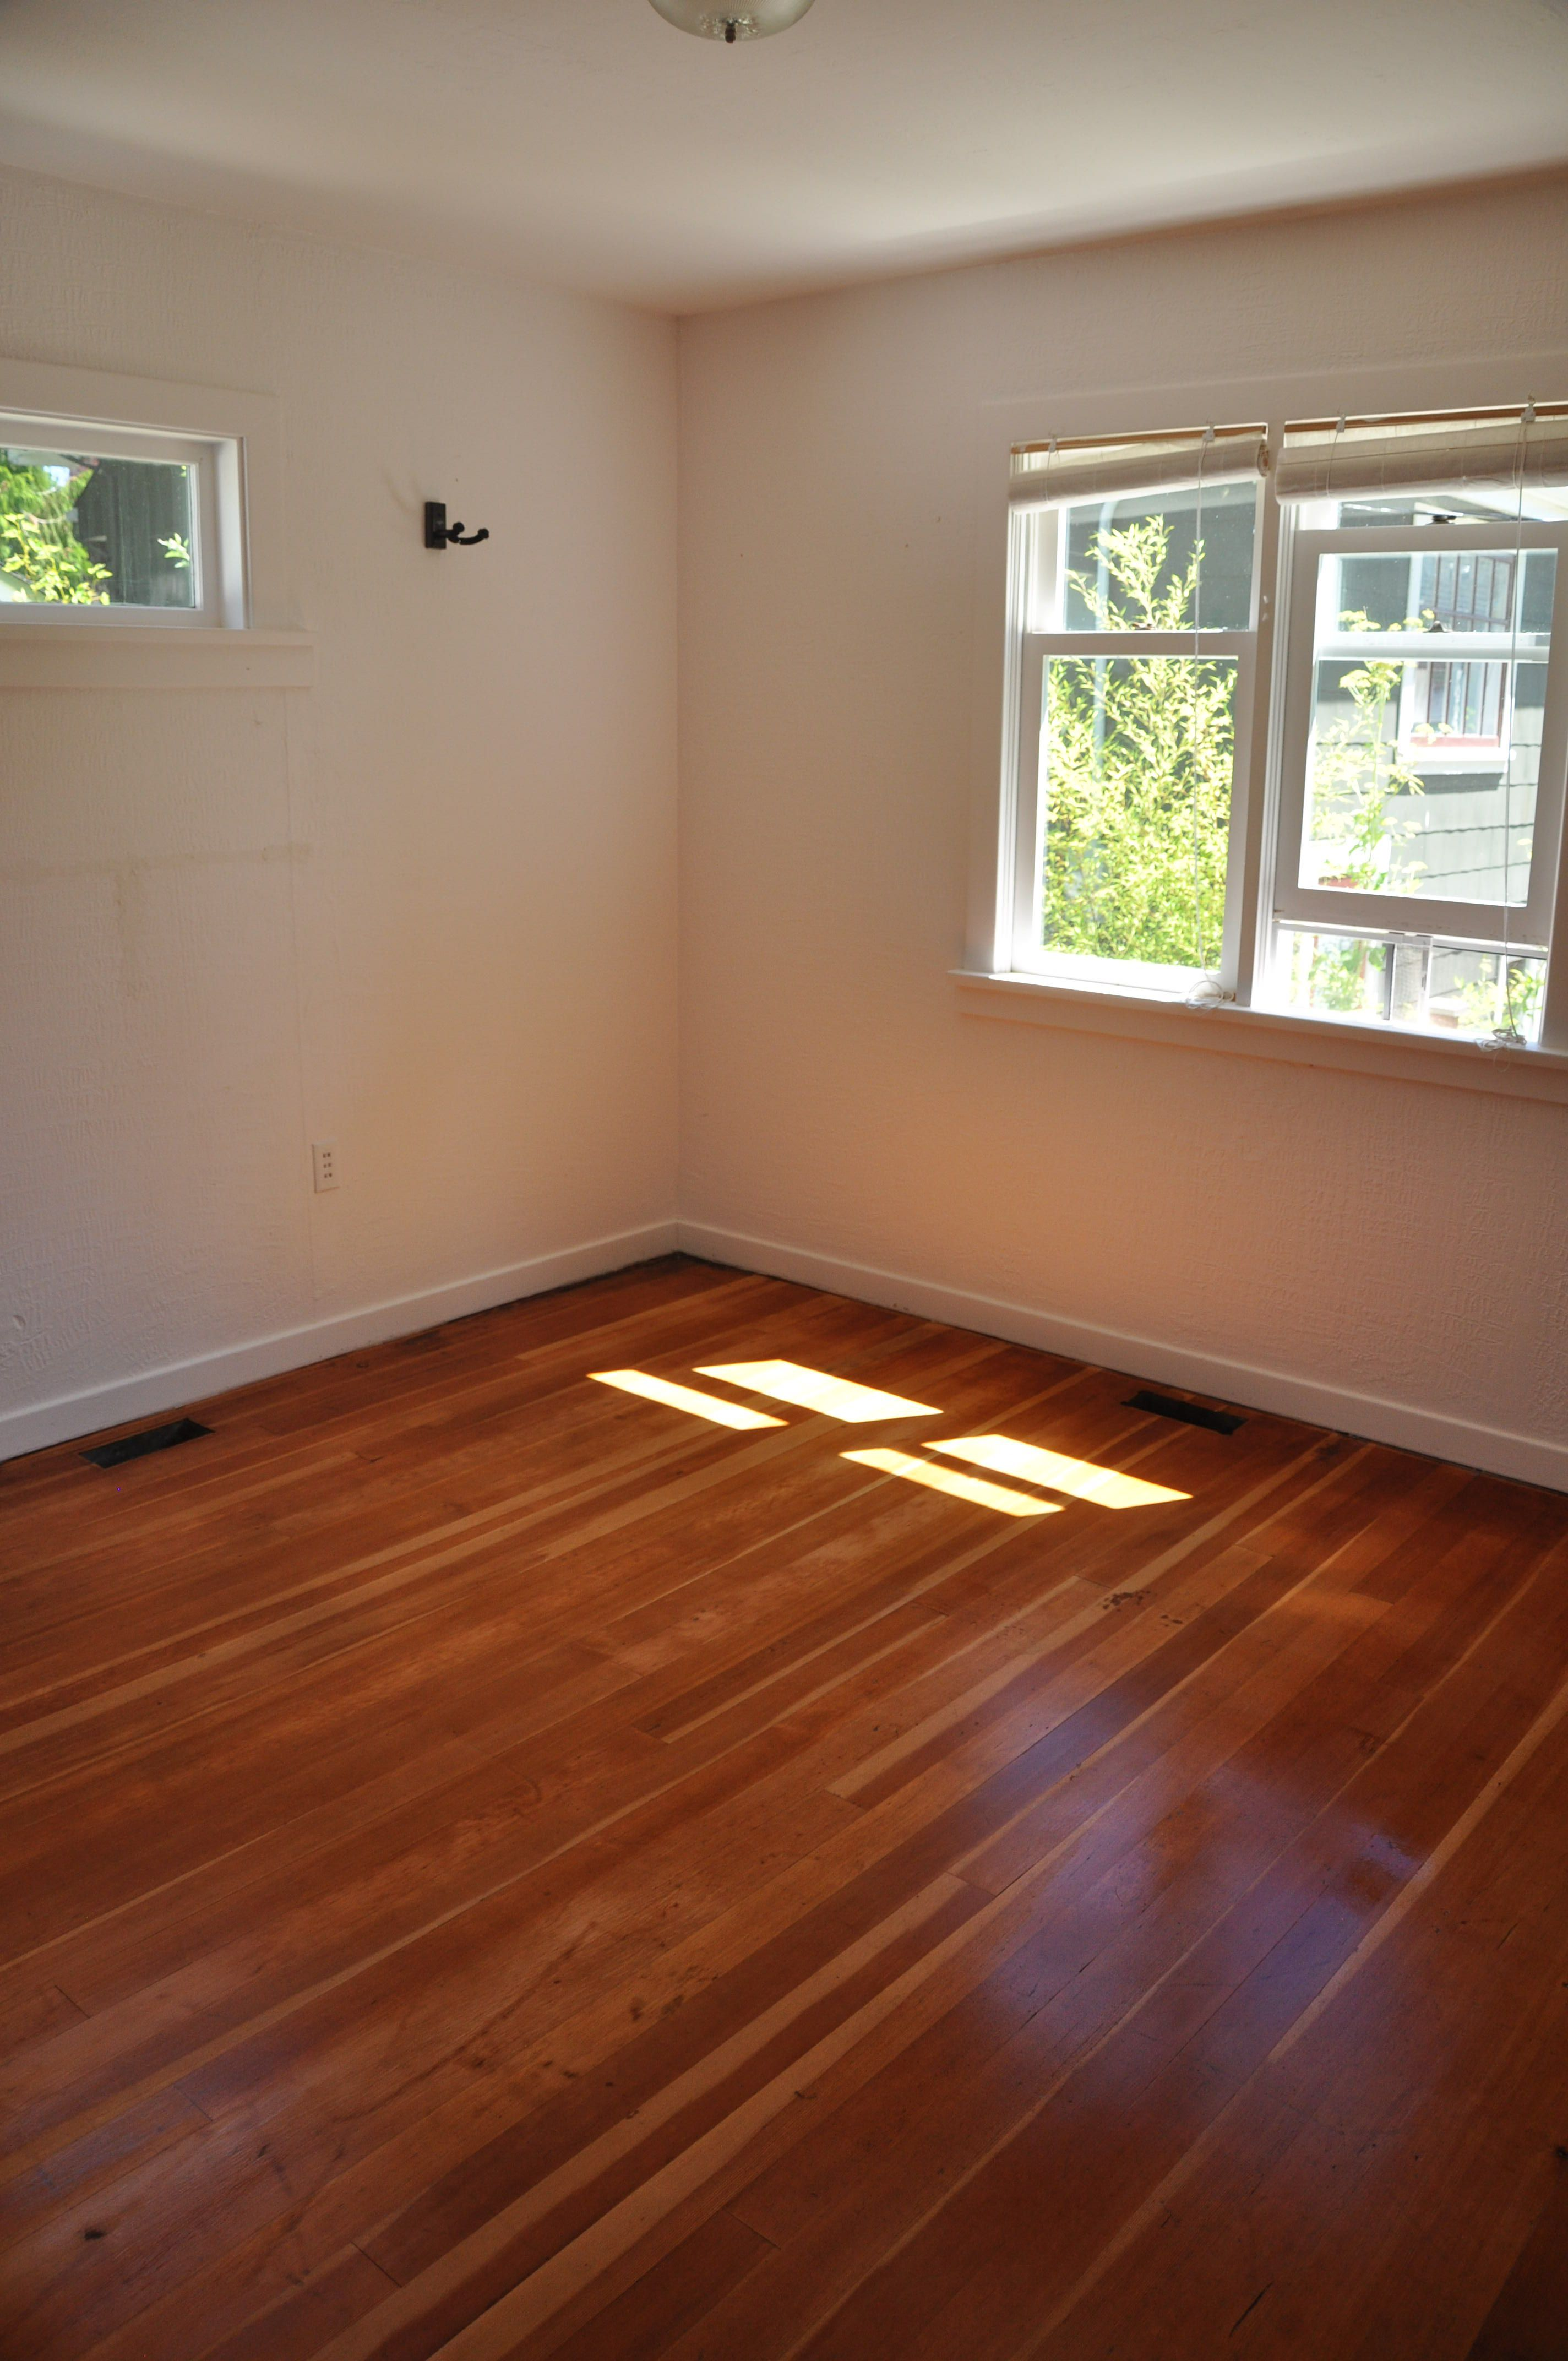 Refinishing The Fir Floors In L Espace D Art Et Musique Flooring Refinished New Homes